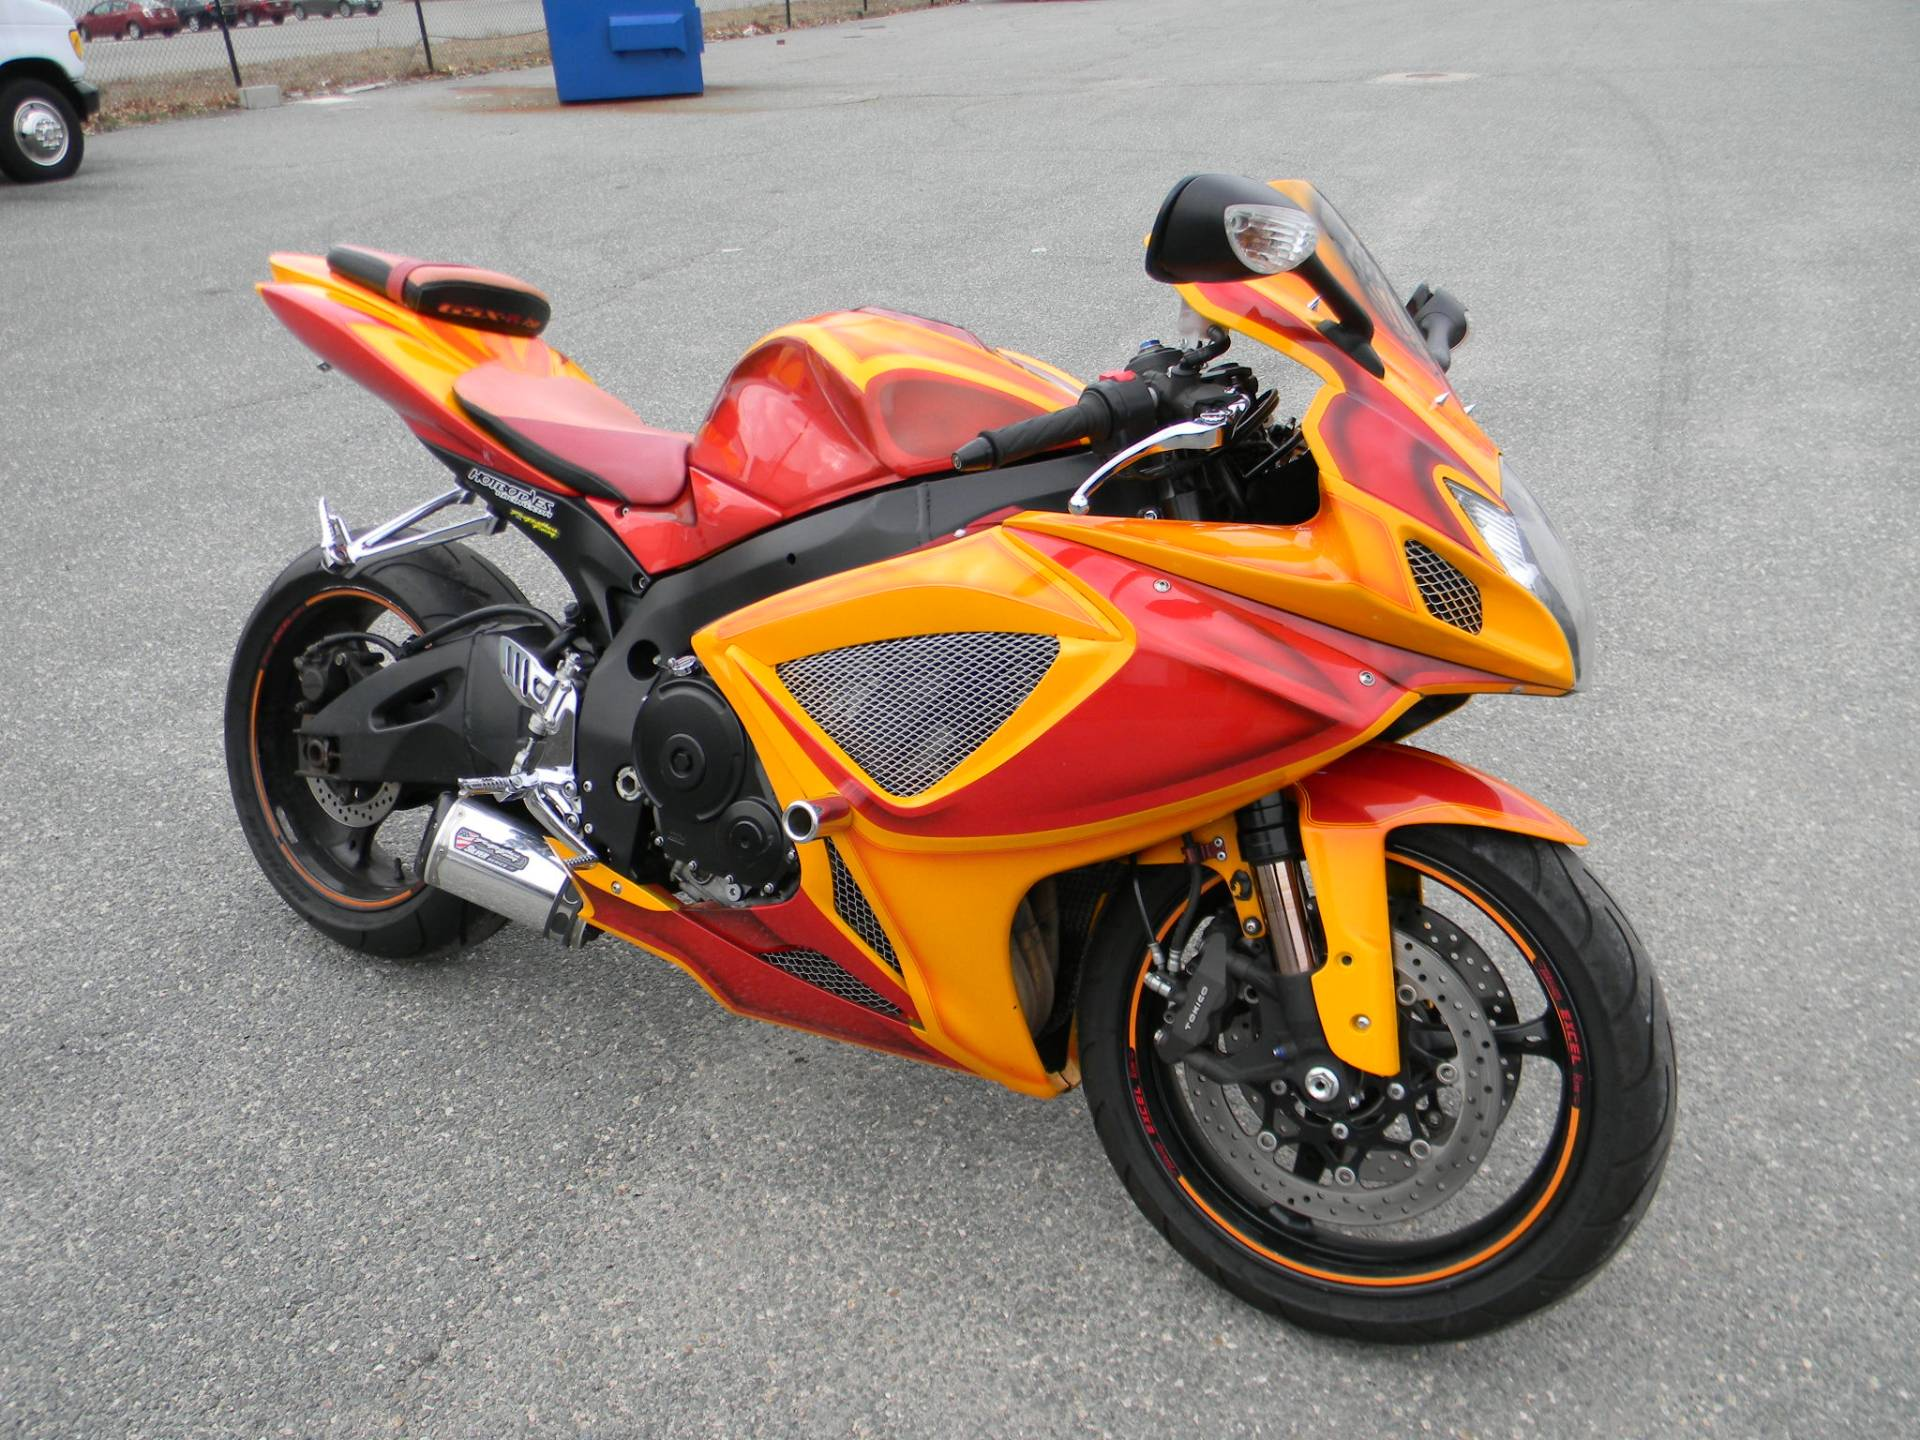 2007 suzuki gsxr 750 for sale springfield ma 579052. Black Bedroom Furniture Sets. Home Design Ideas